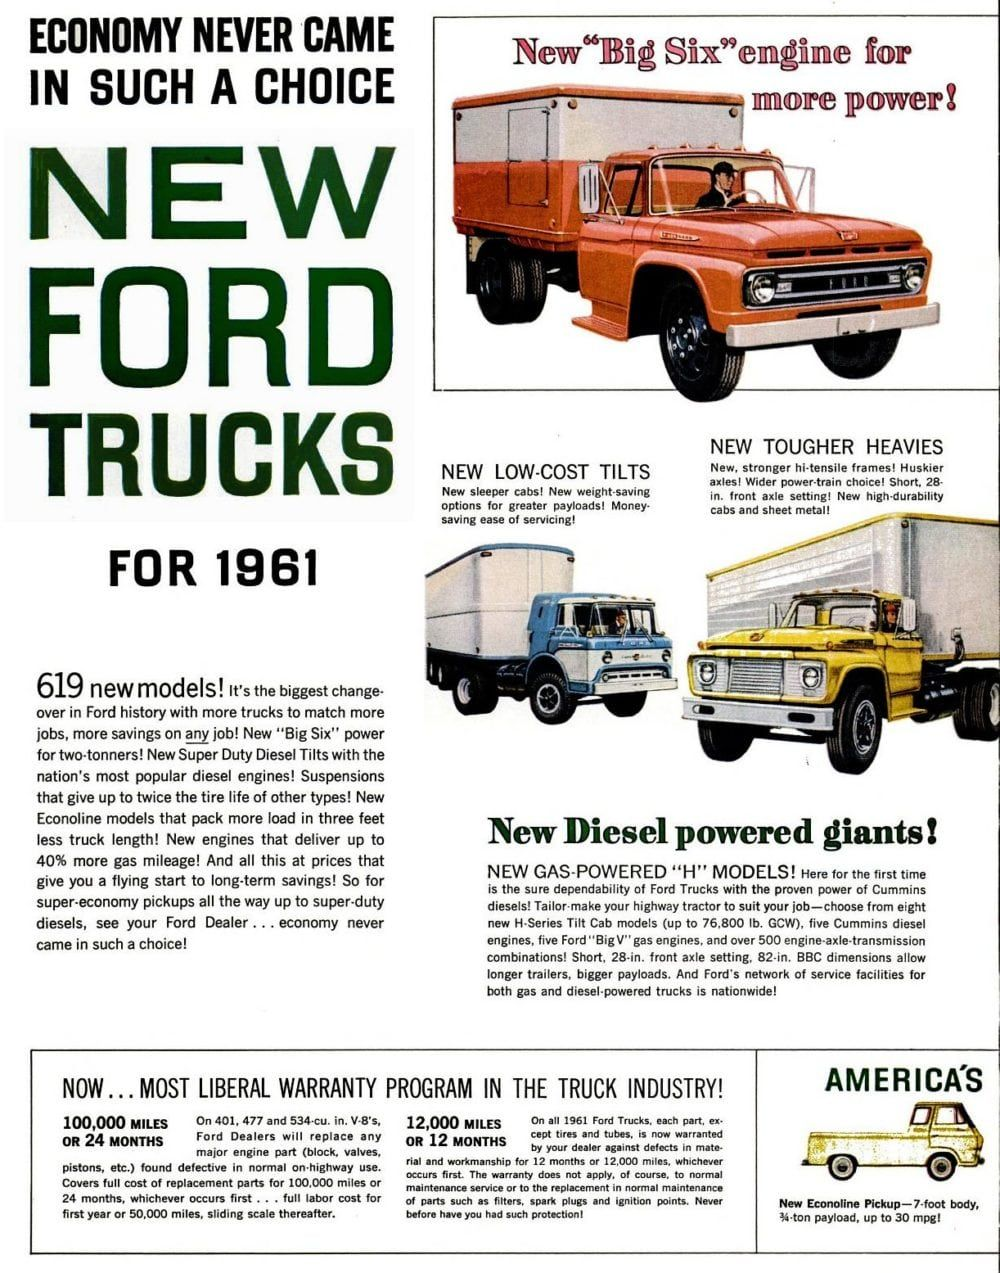 hight resolution of new ford economy never came in such a choice